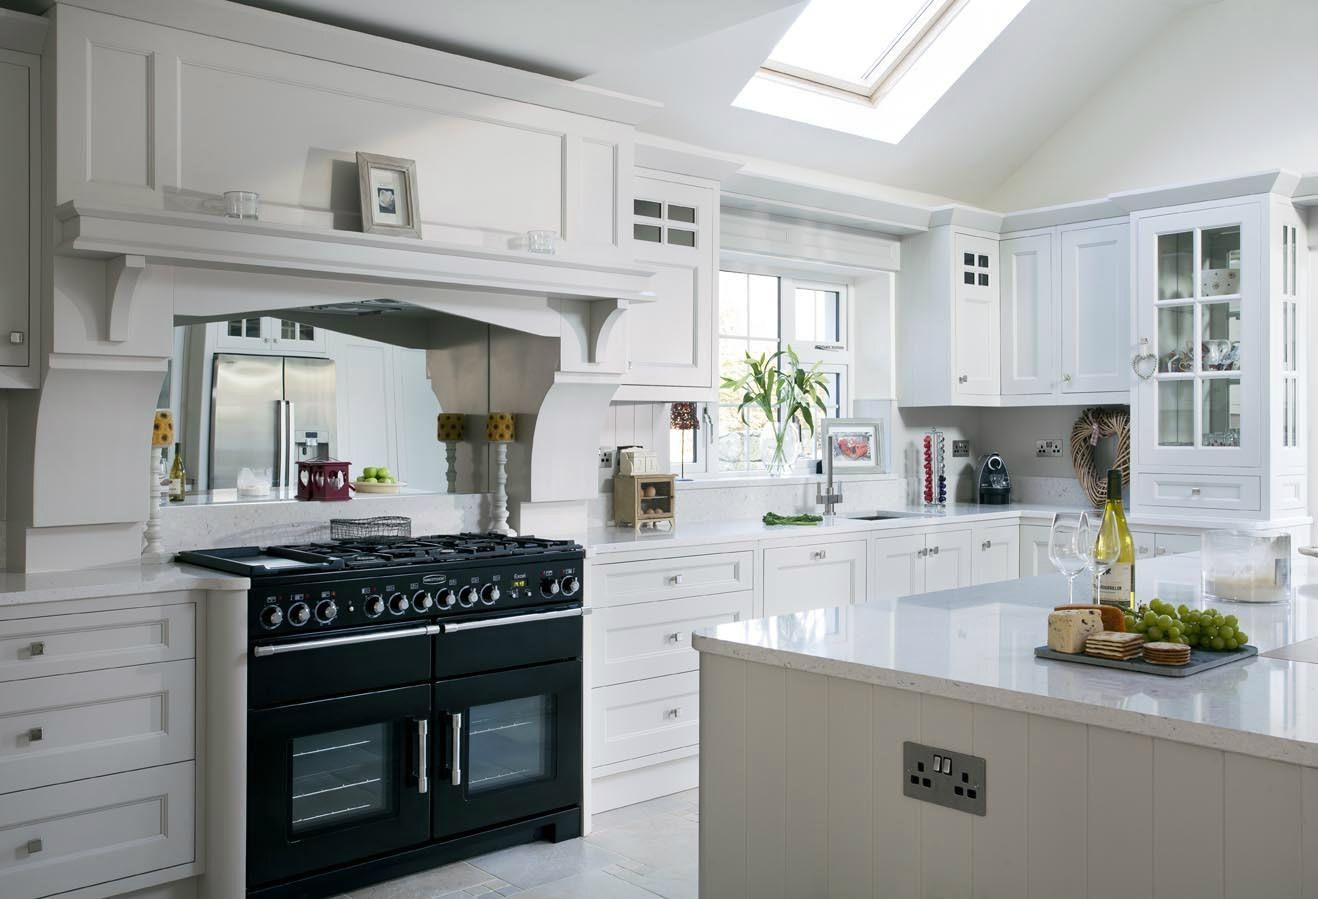 Best White Kitchen With Silestone In The Color Bianco River 400 x 300